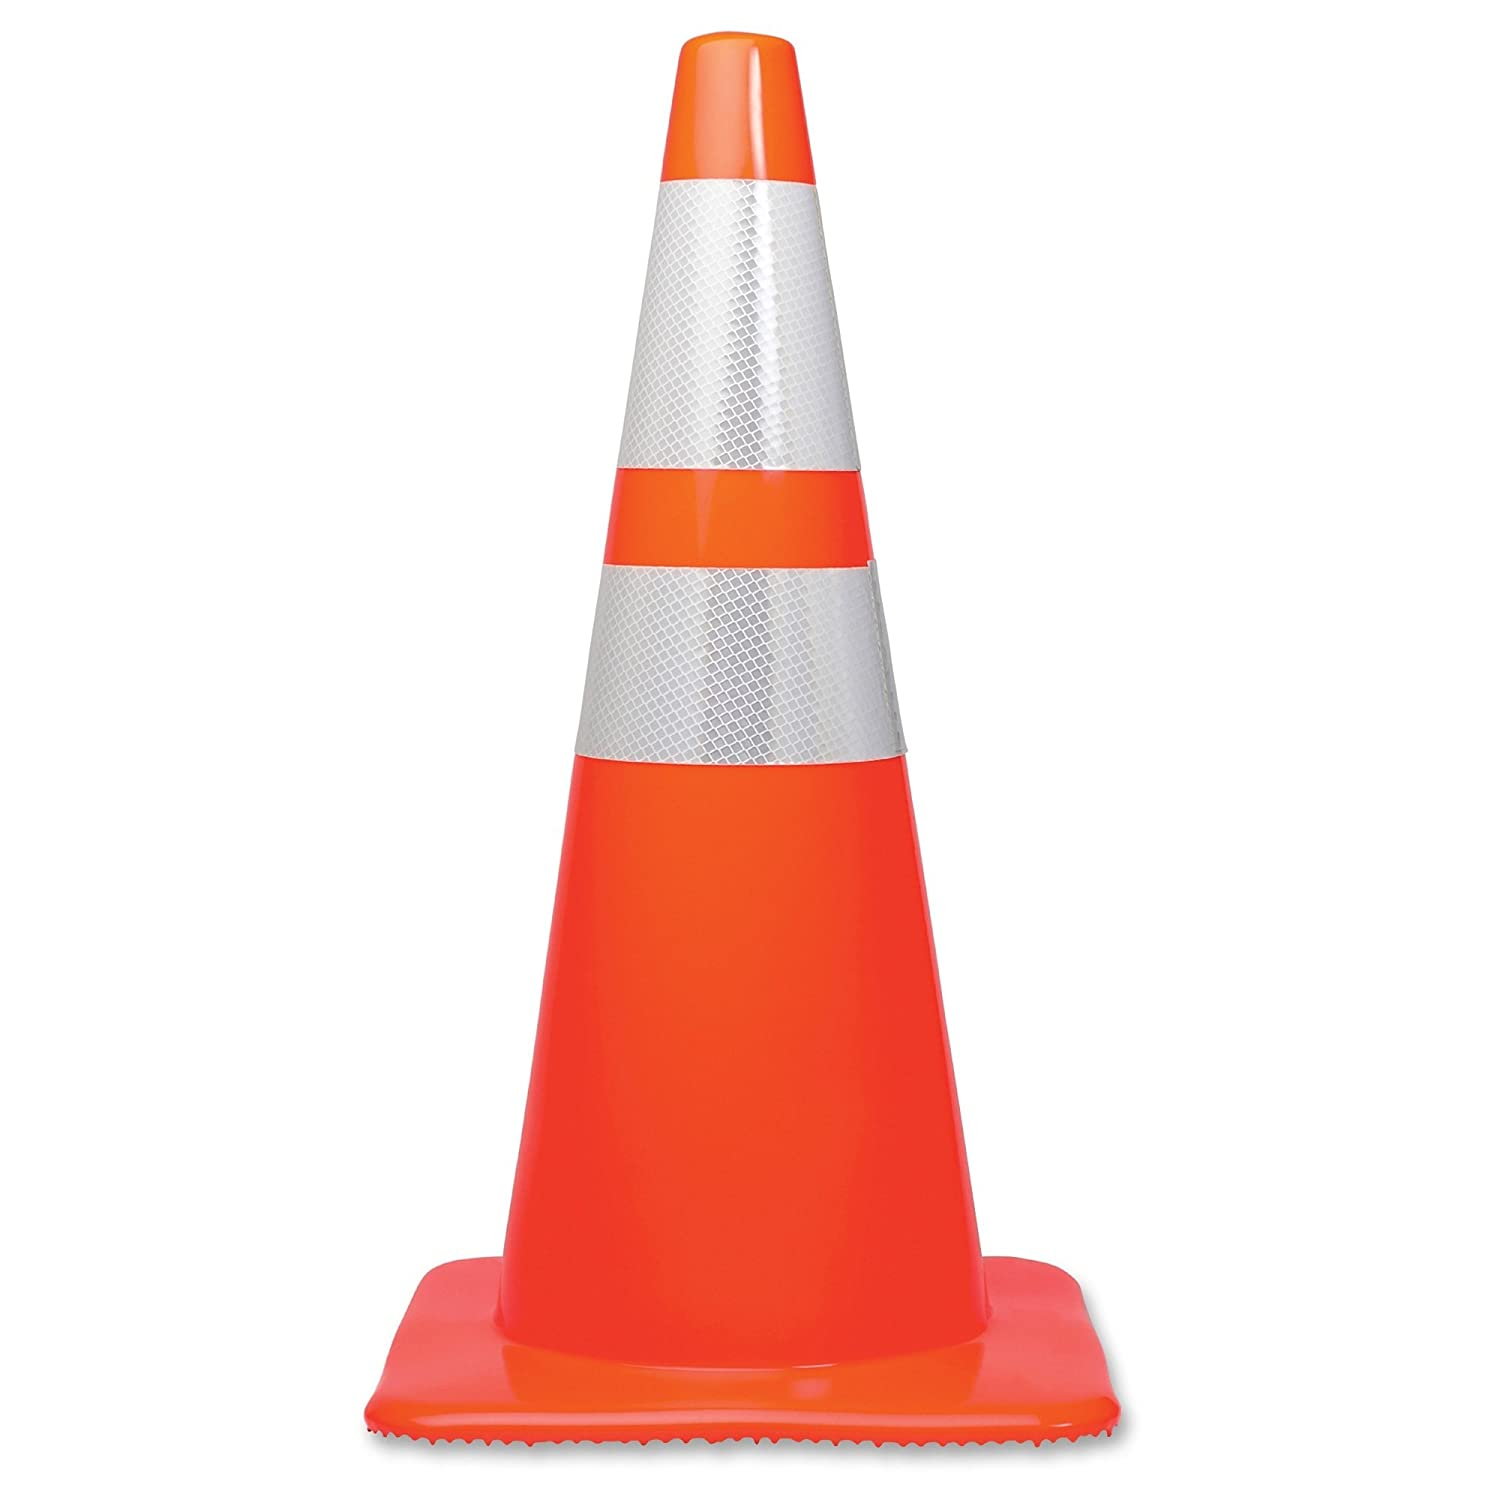 Tatco 28' Traffic Cone - 1 / Each - 28' Height, Stackable, Sturdy, Orange, Silver (TCO25900)